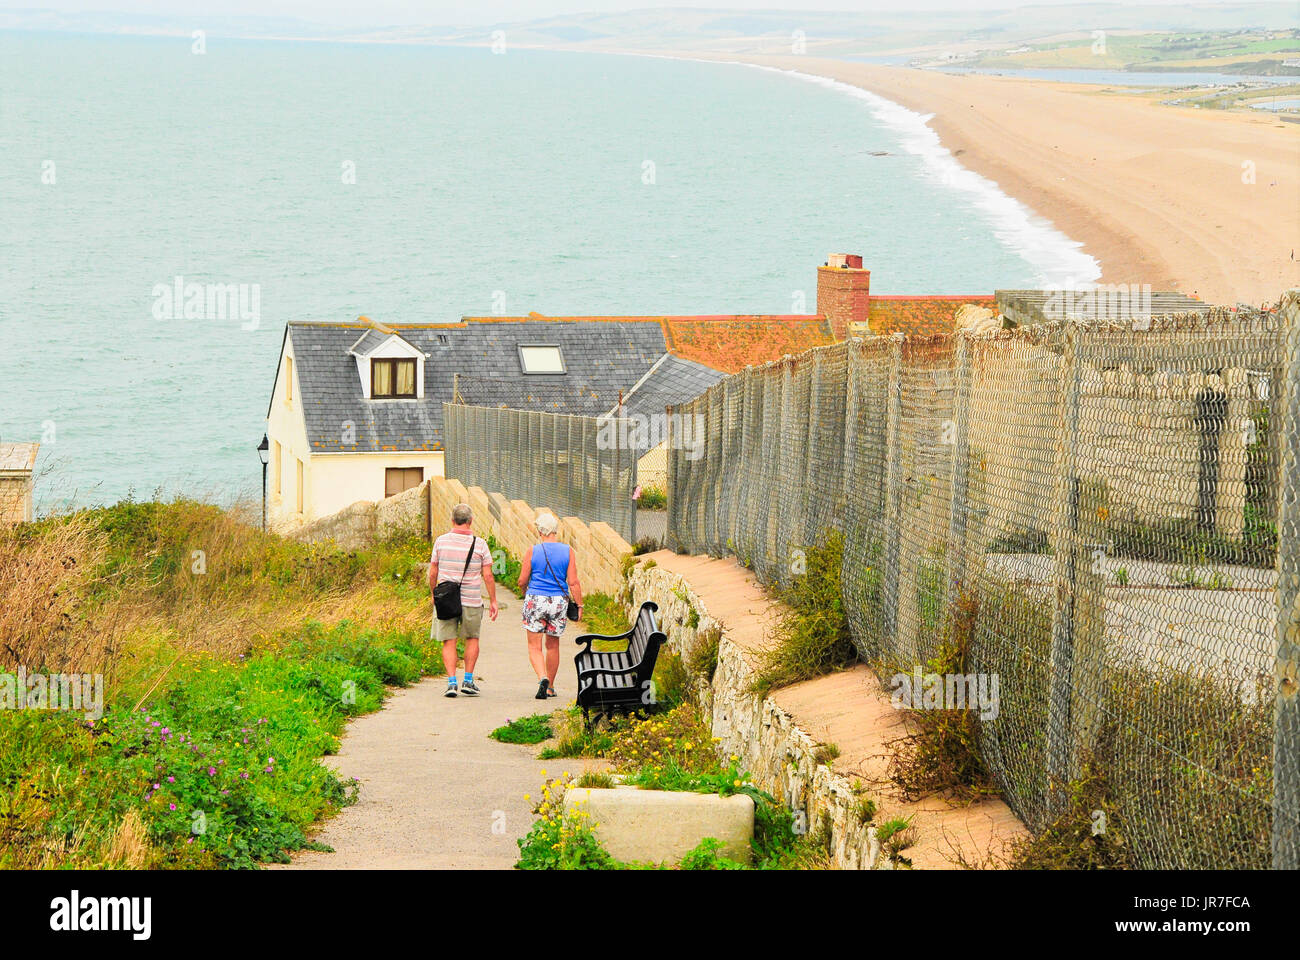 Chesil Beach, Dorset. 04th Aug, 2017. UK Weather: A couple on Portland walk down the steep path to Chesil Beach on a bright and breezy day in Dorset Credit: stuart fretwell/Alamy Live News - Stock Image